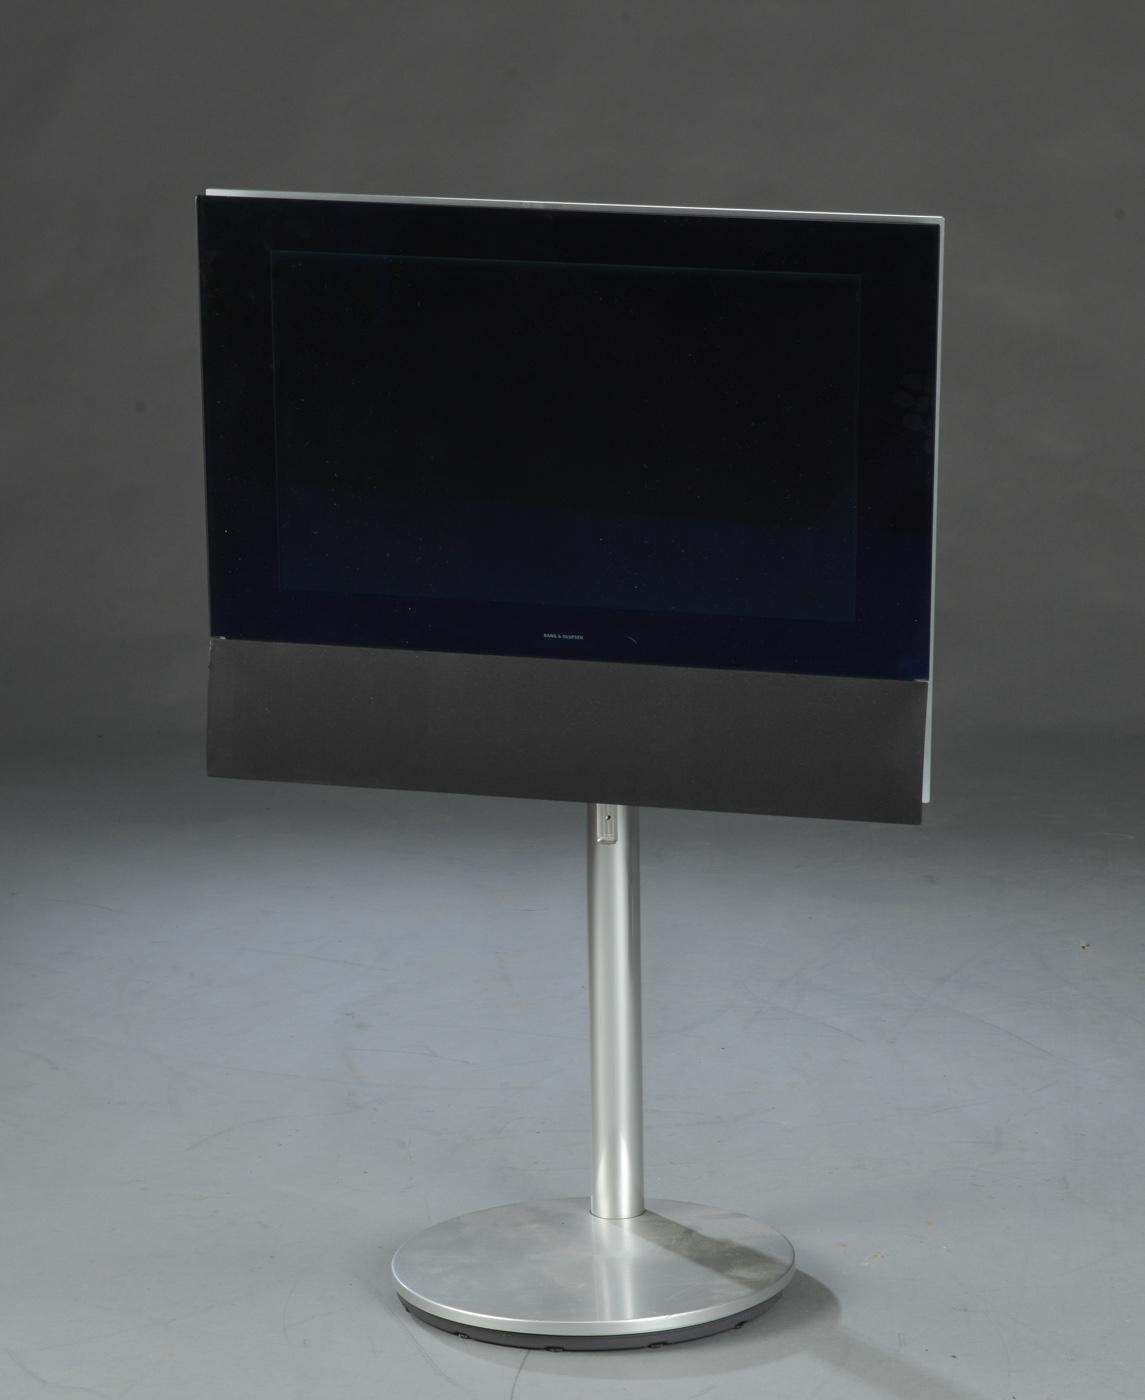 Bang & Olufsen BeoVision 6-26 inch HD TV